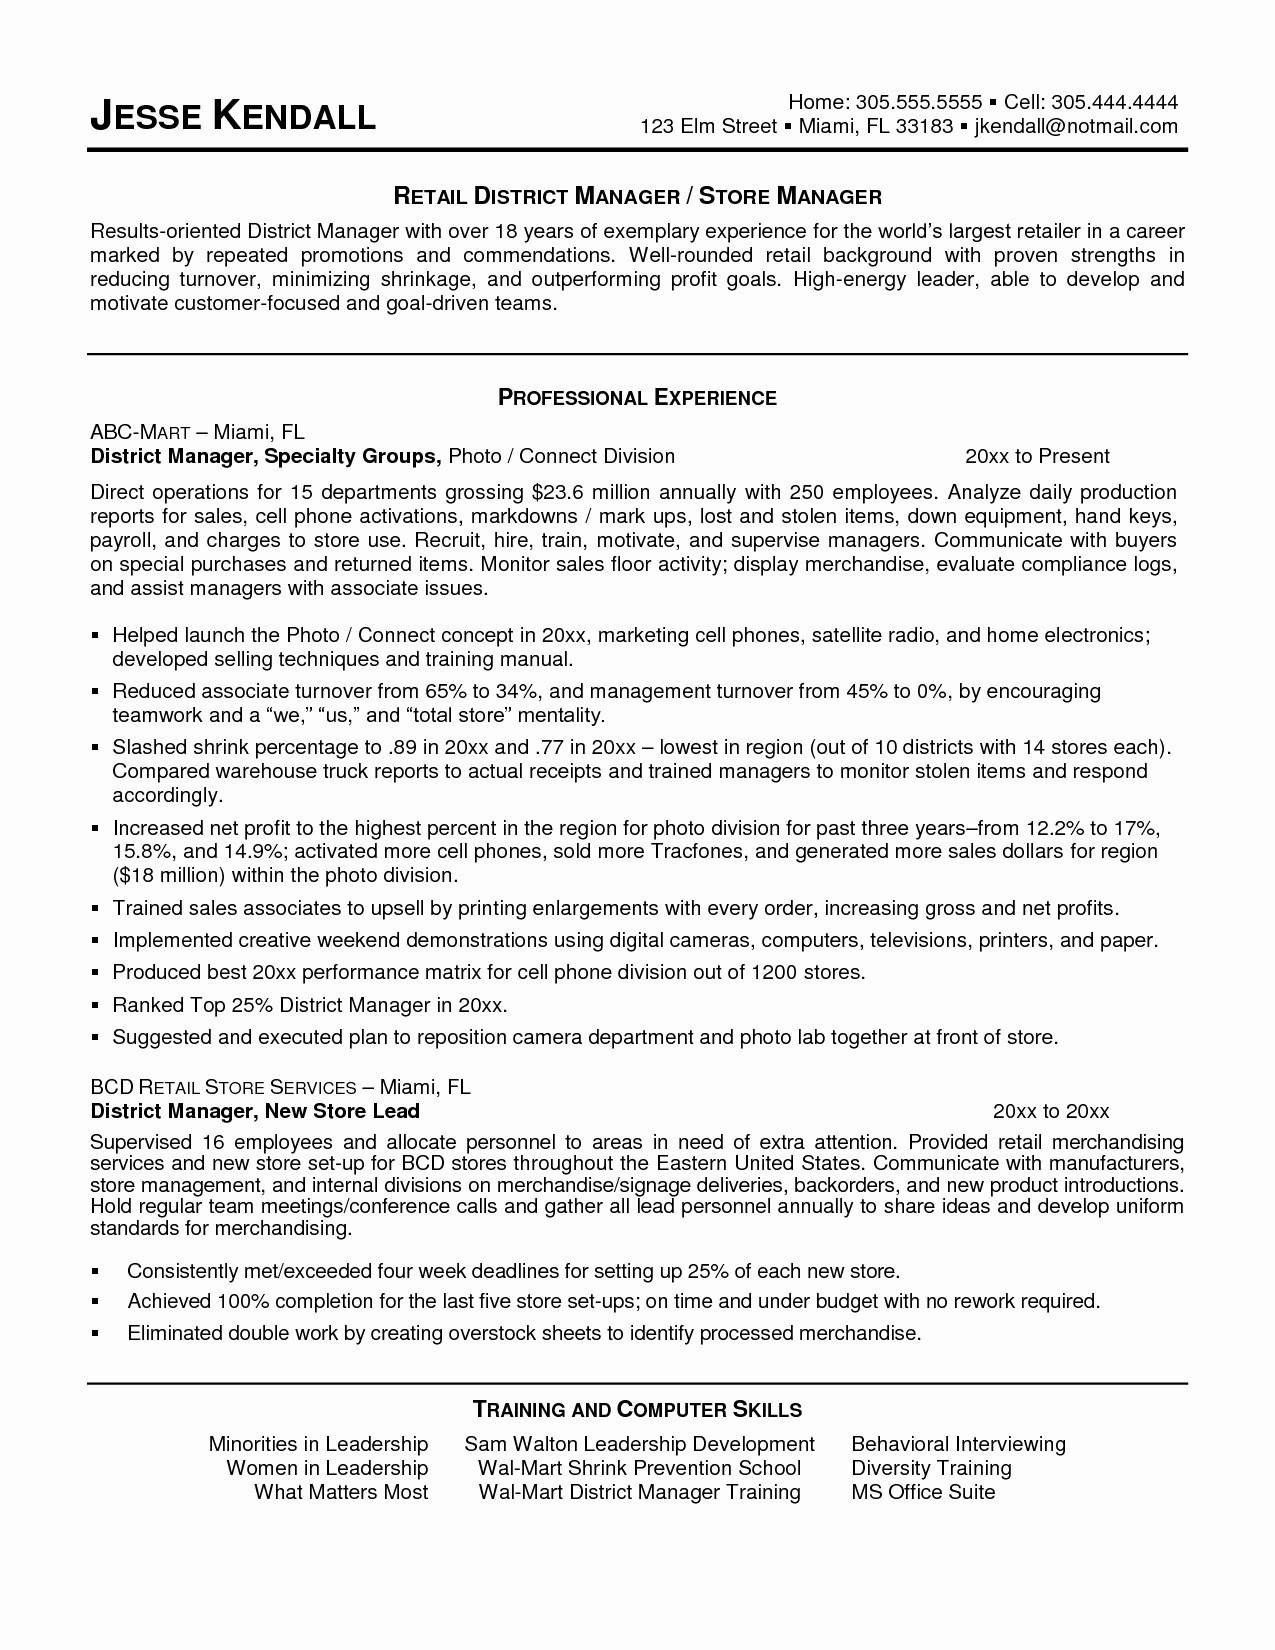 Resume Template For Retail Position